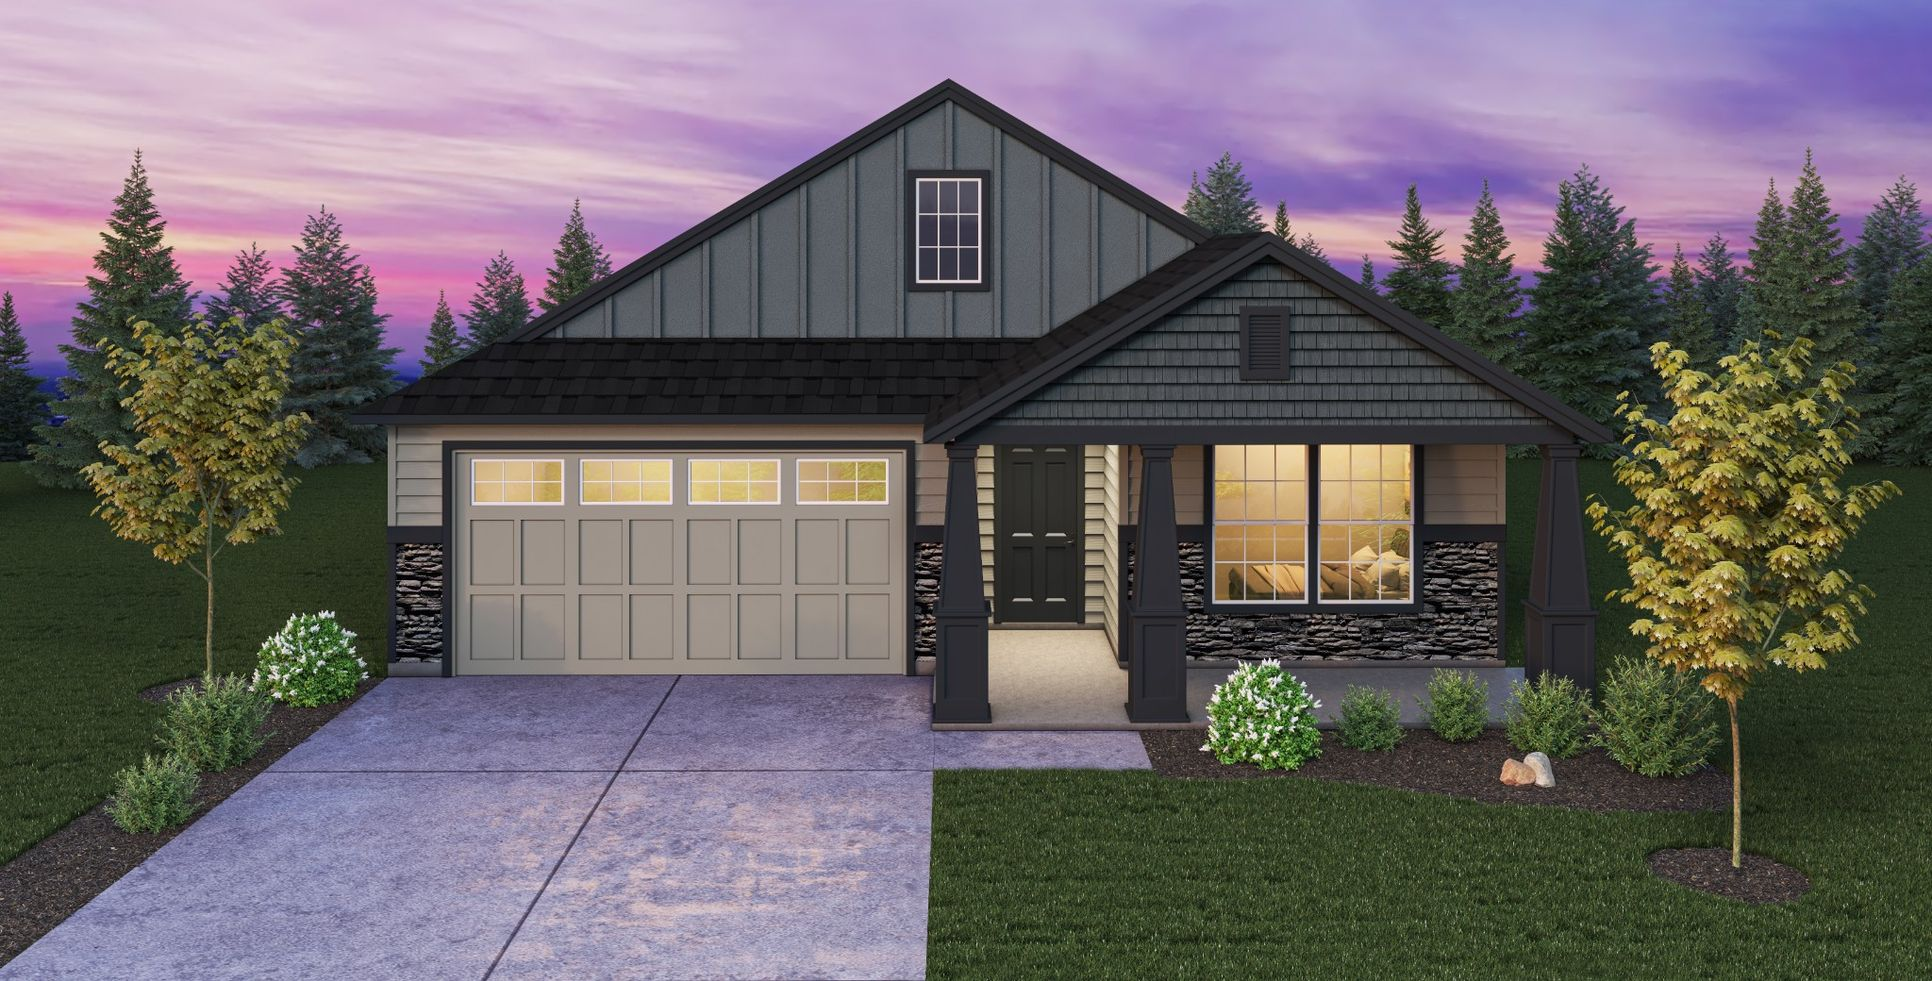 Exterior:Plan 1549 Elevation 6 with Stone